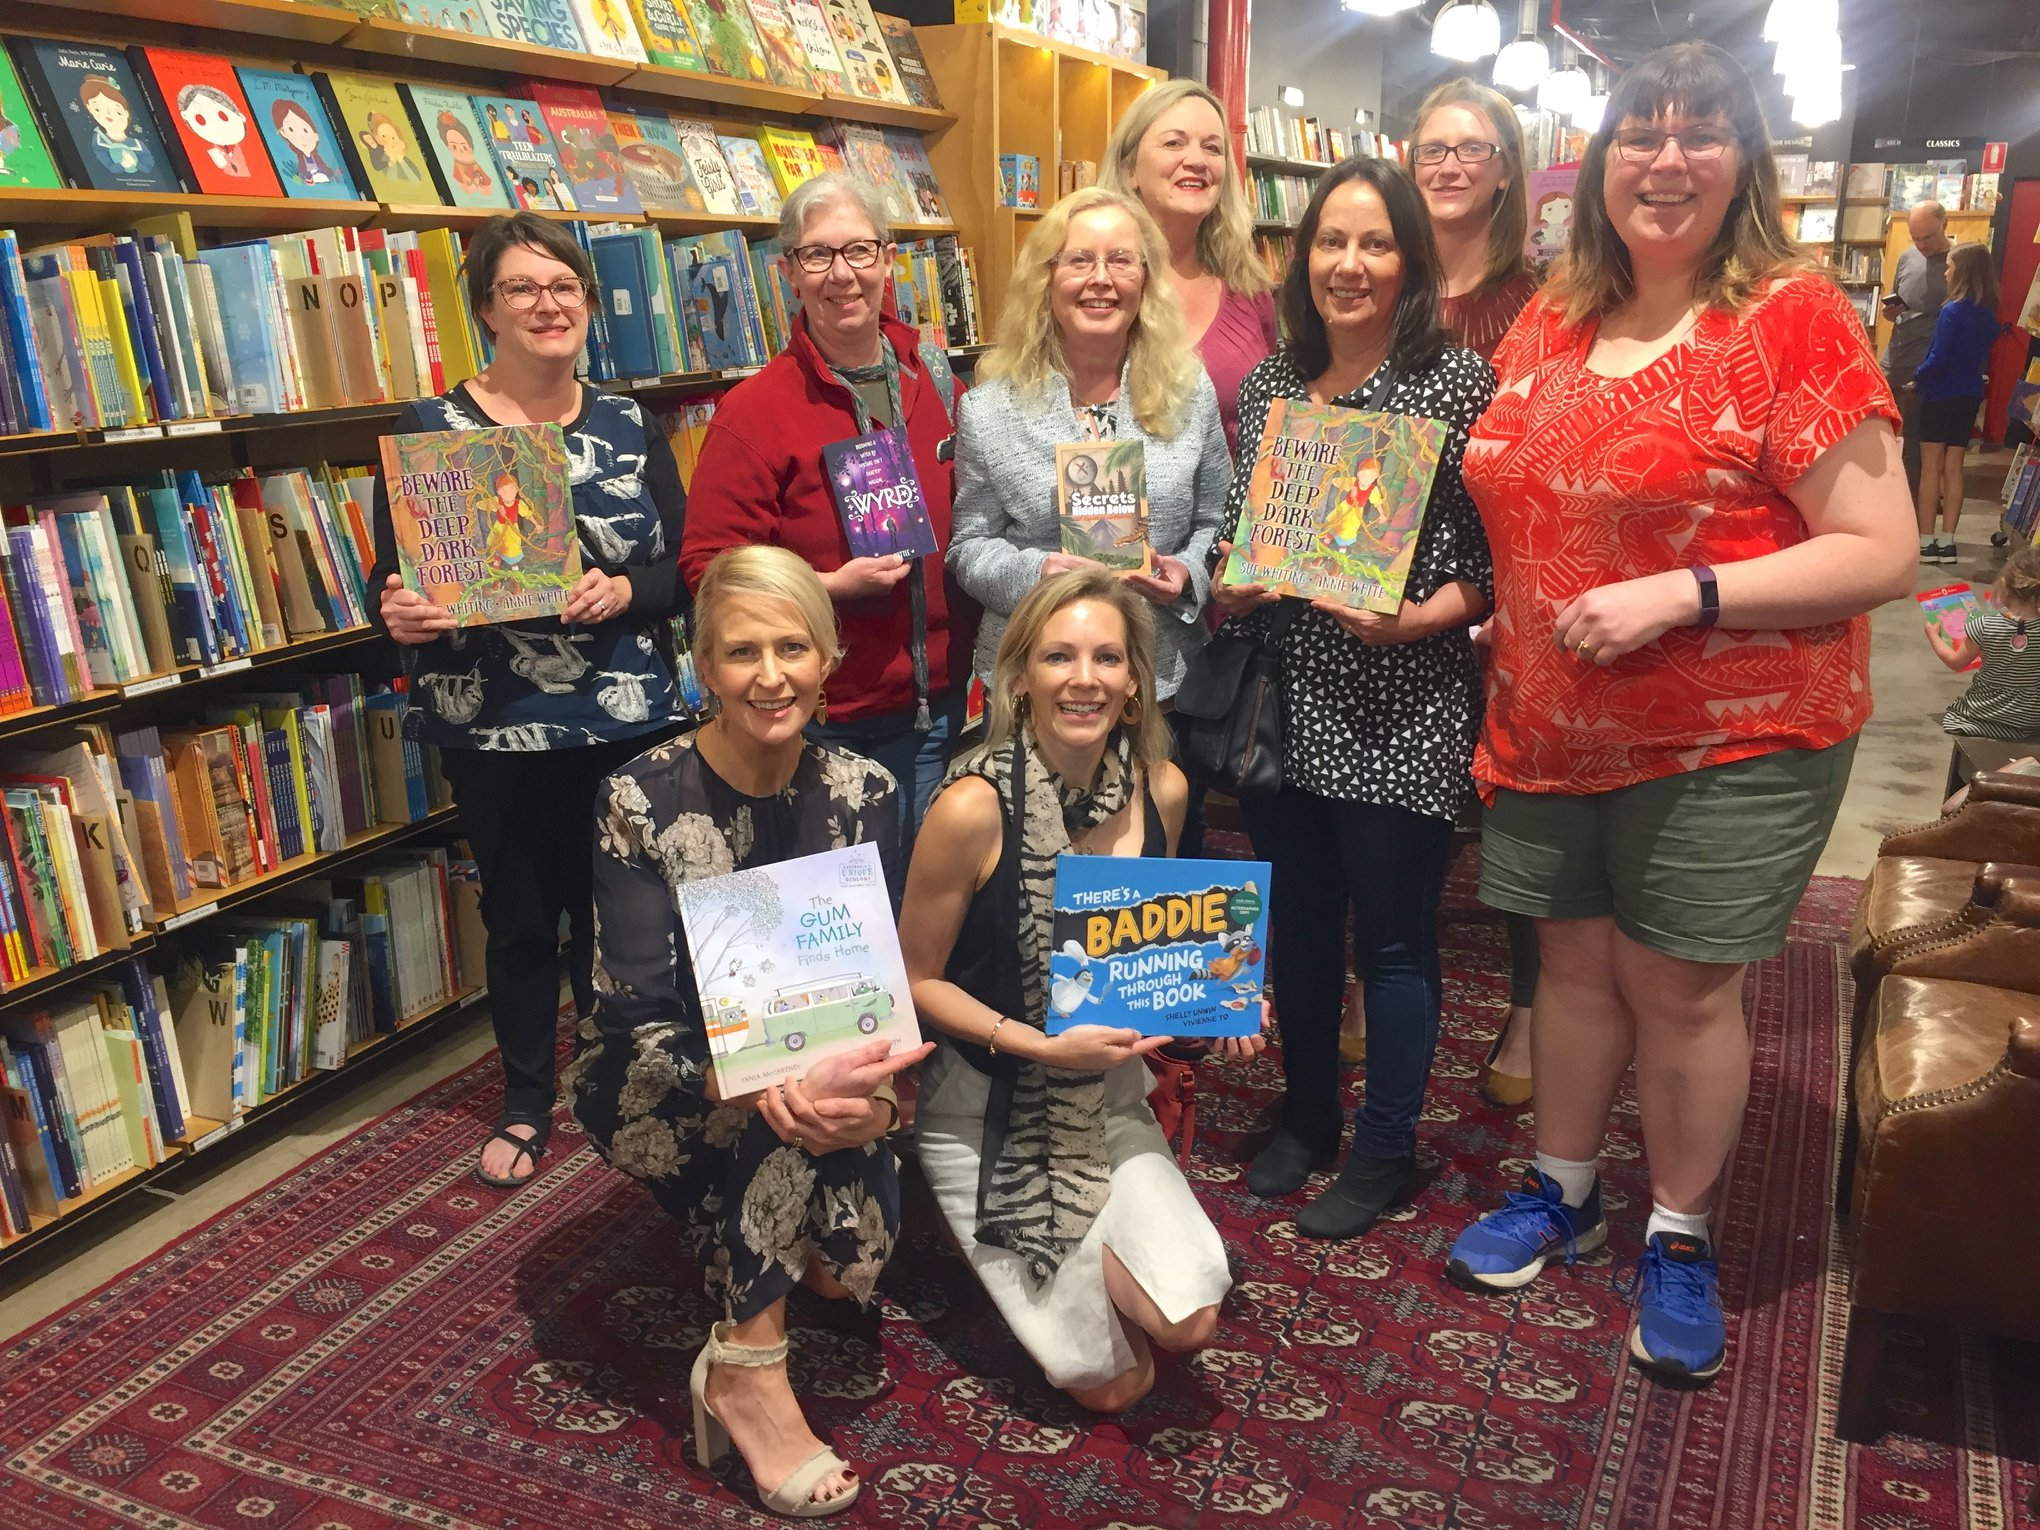 A bunch of amazing authors celebrating the launch of Sue Whiting's latest PB, all holding their own recent releases.